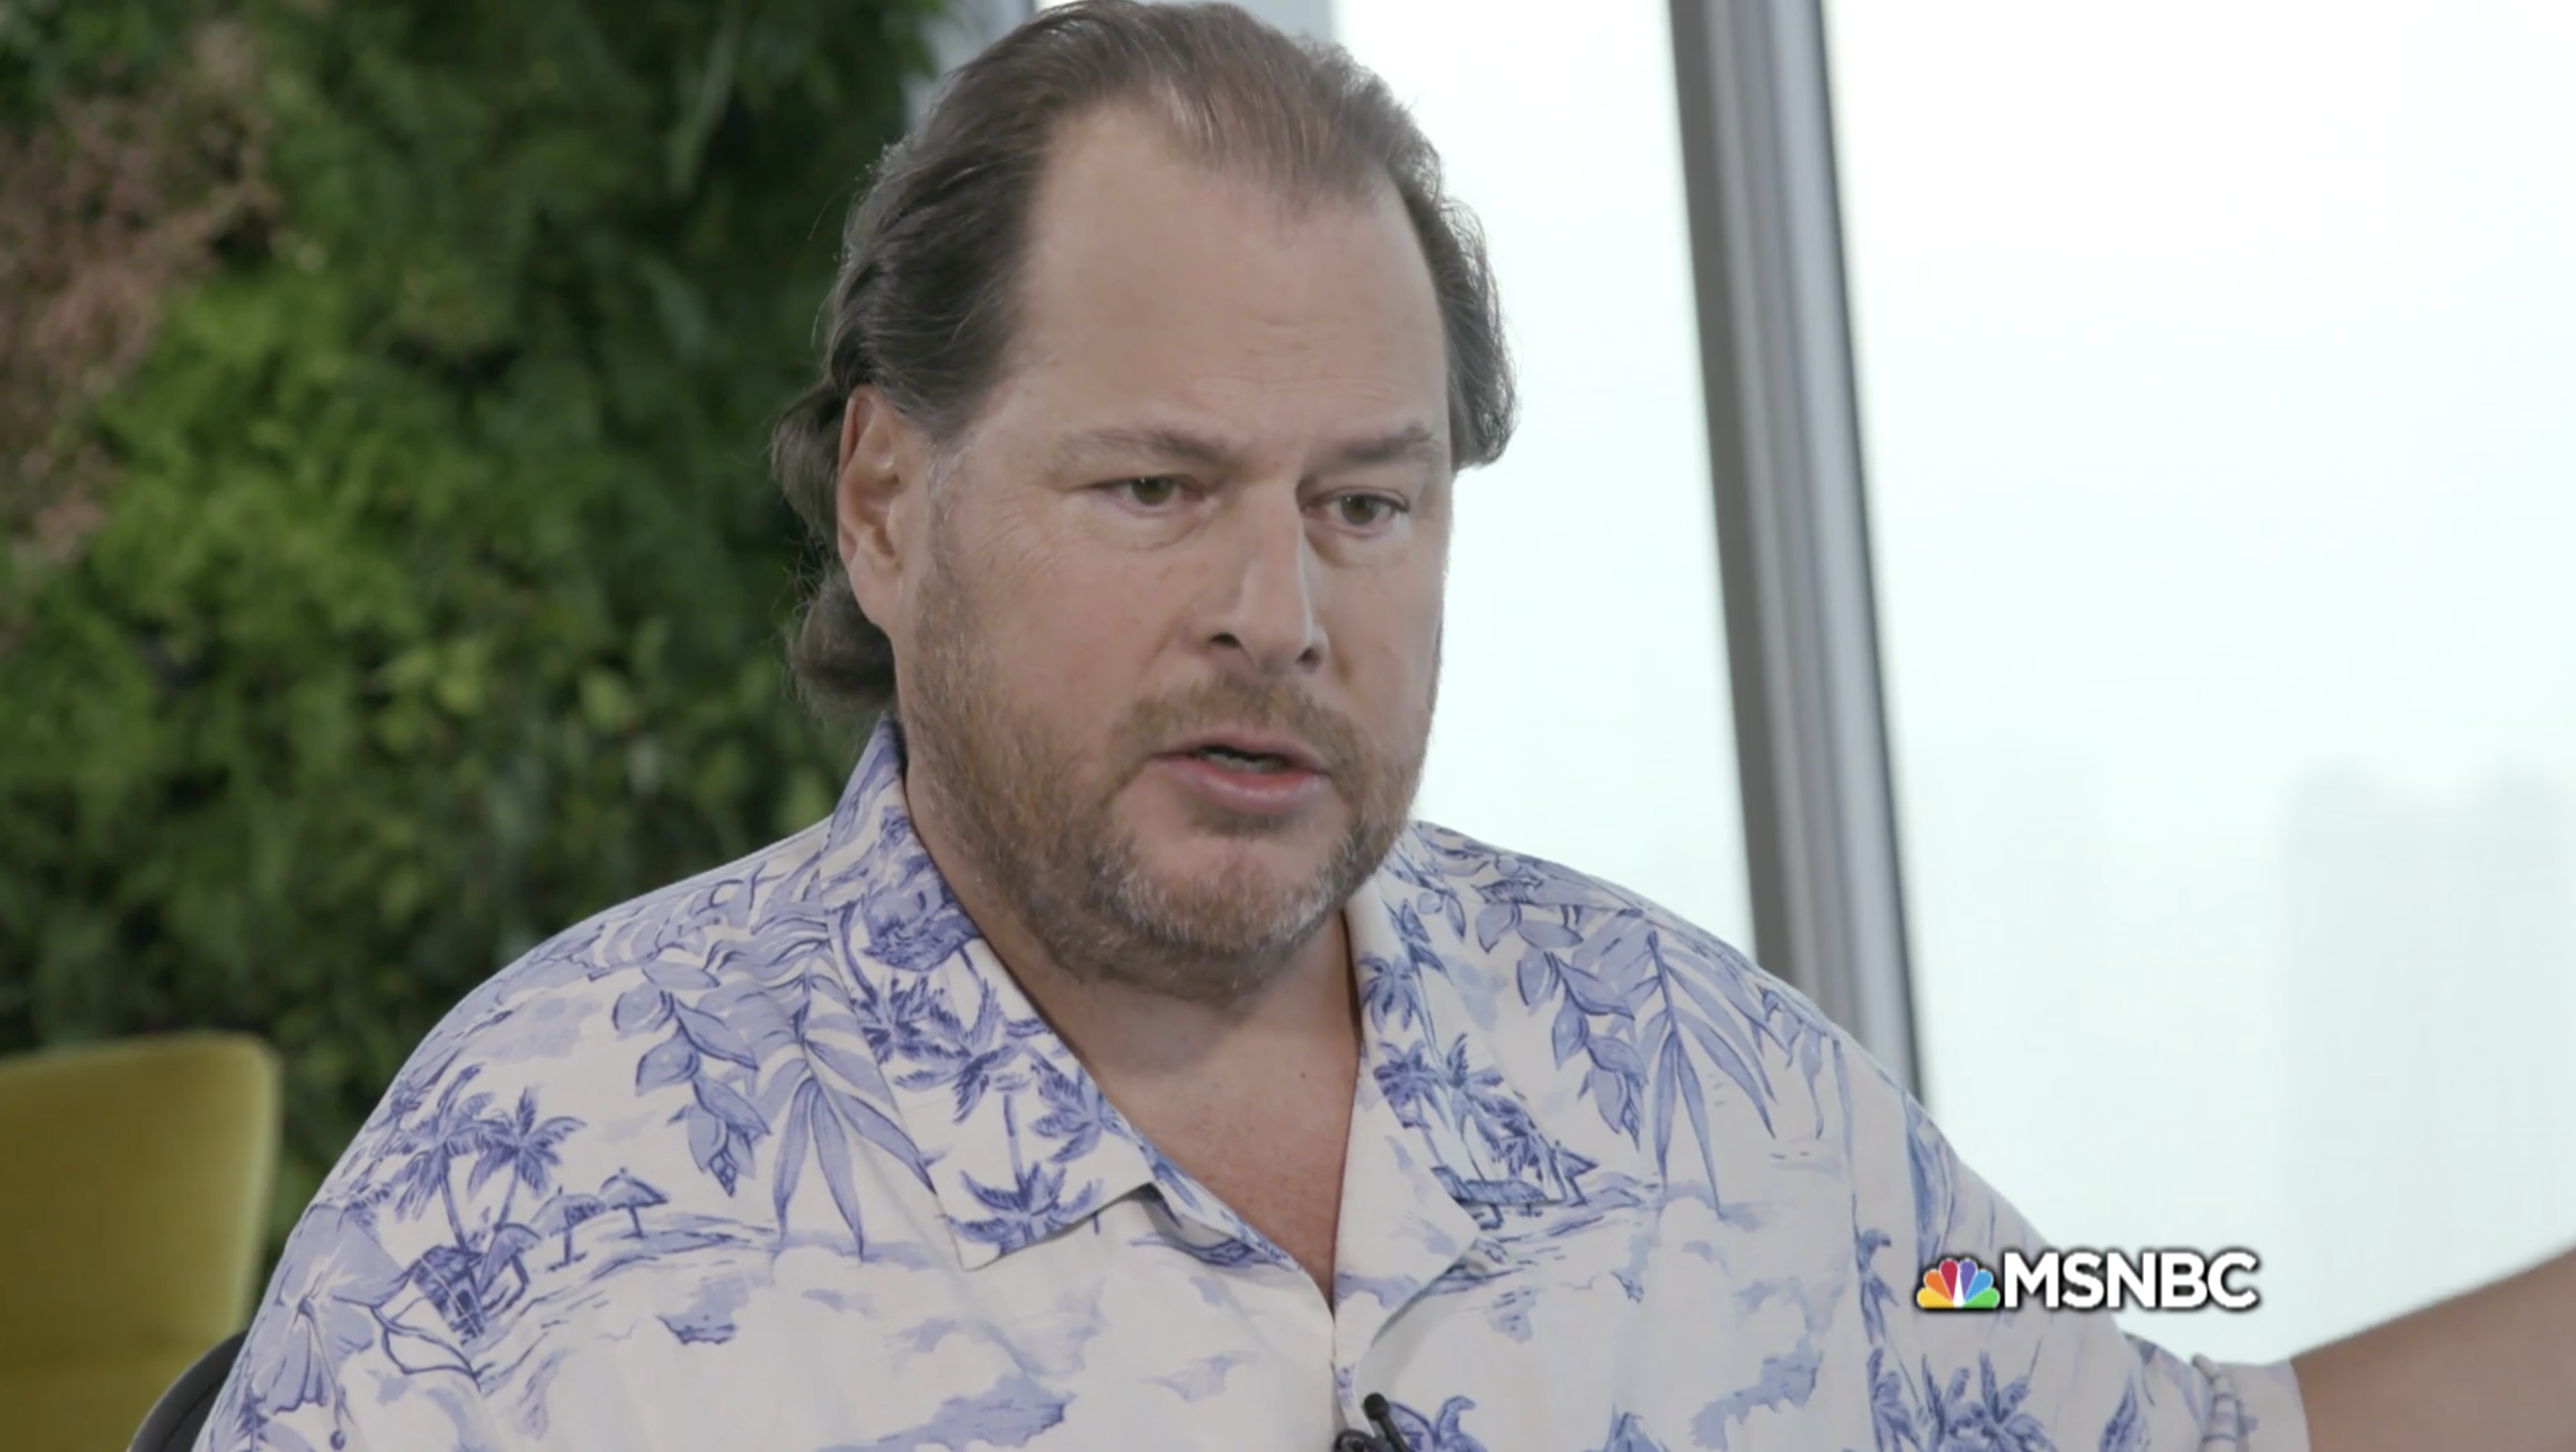 Marc Benioff defends Salesforce's contract with Customs and Border Protection